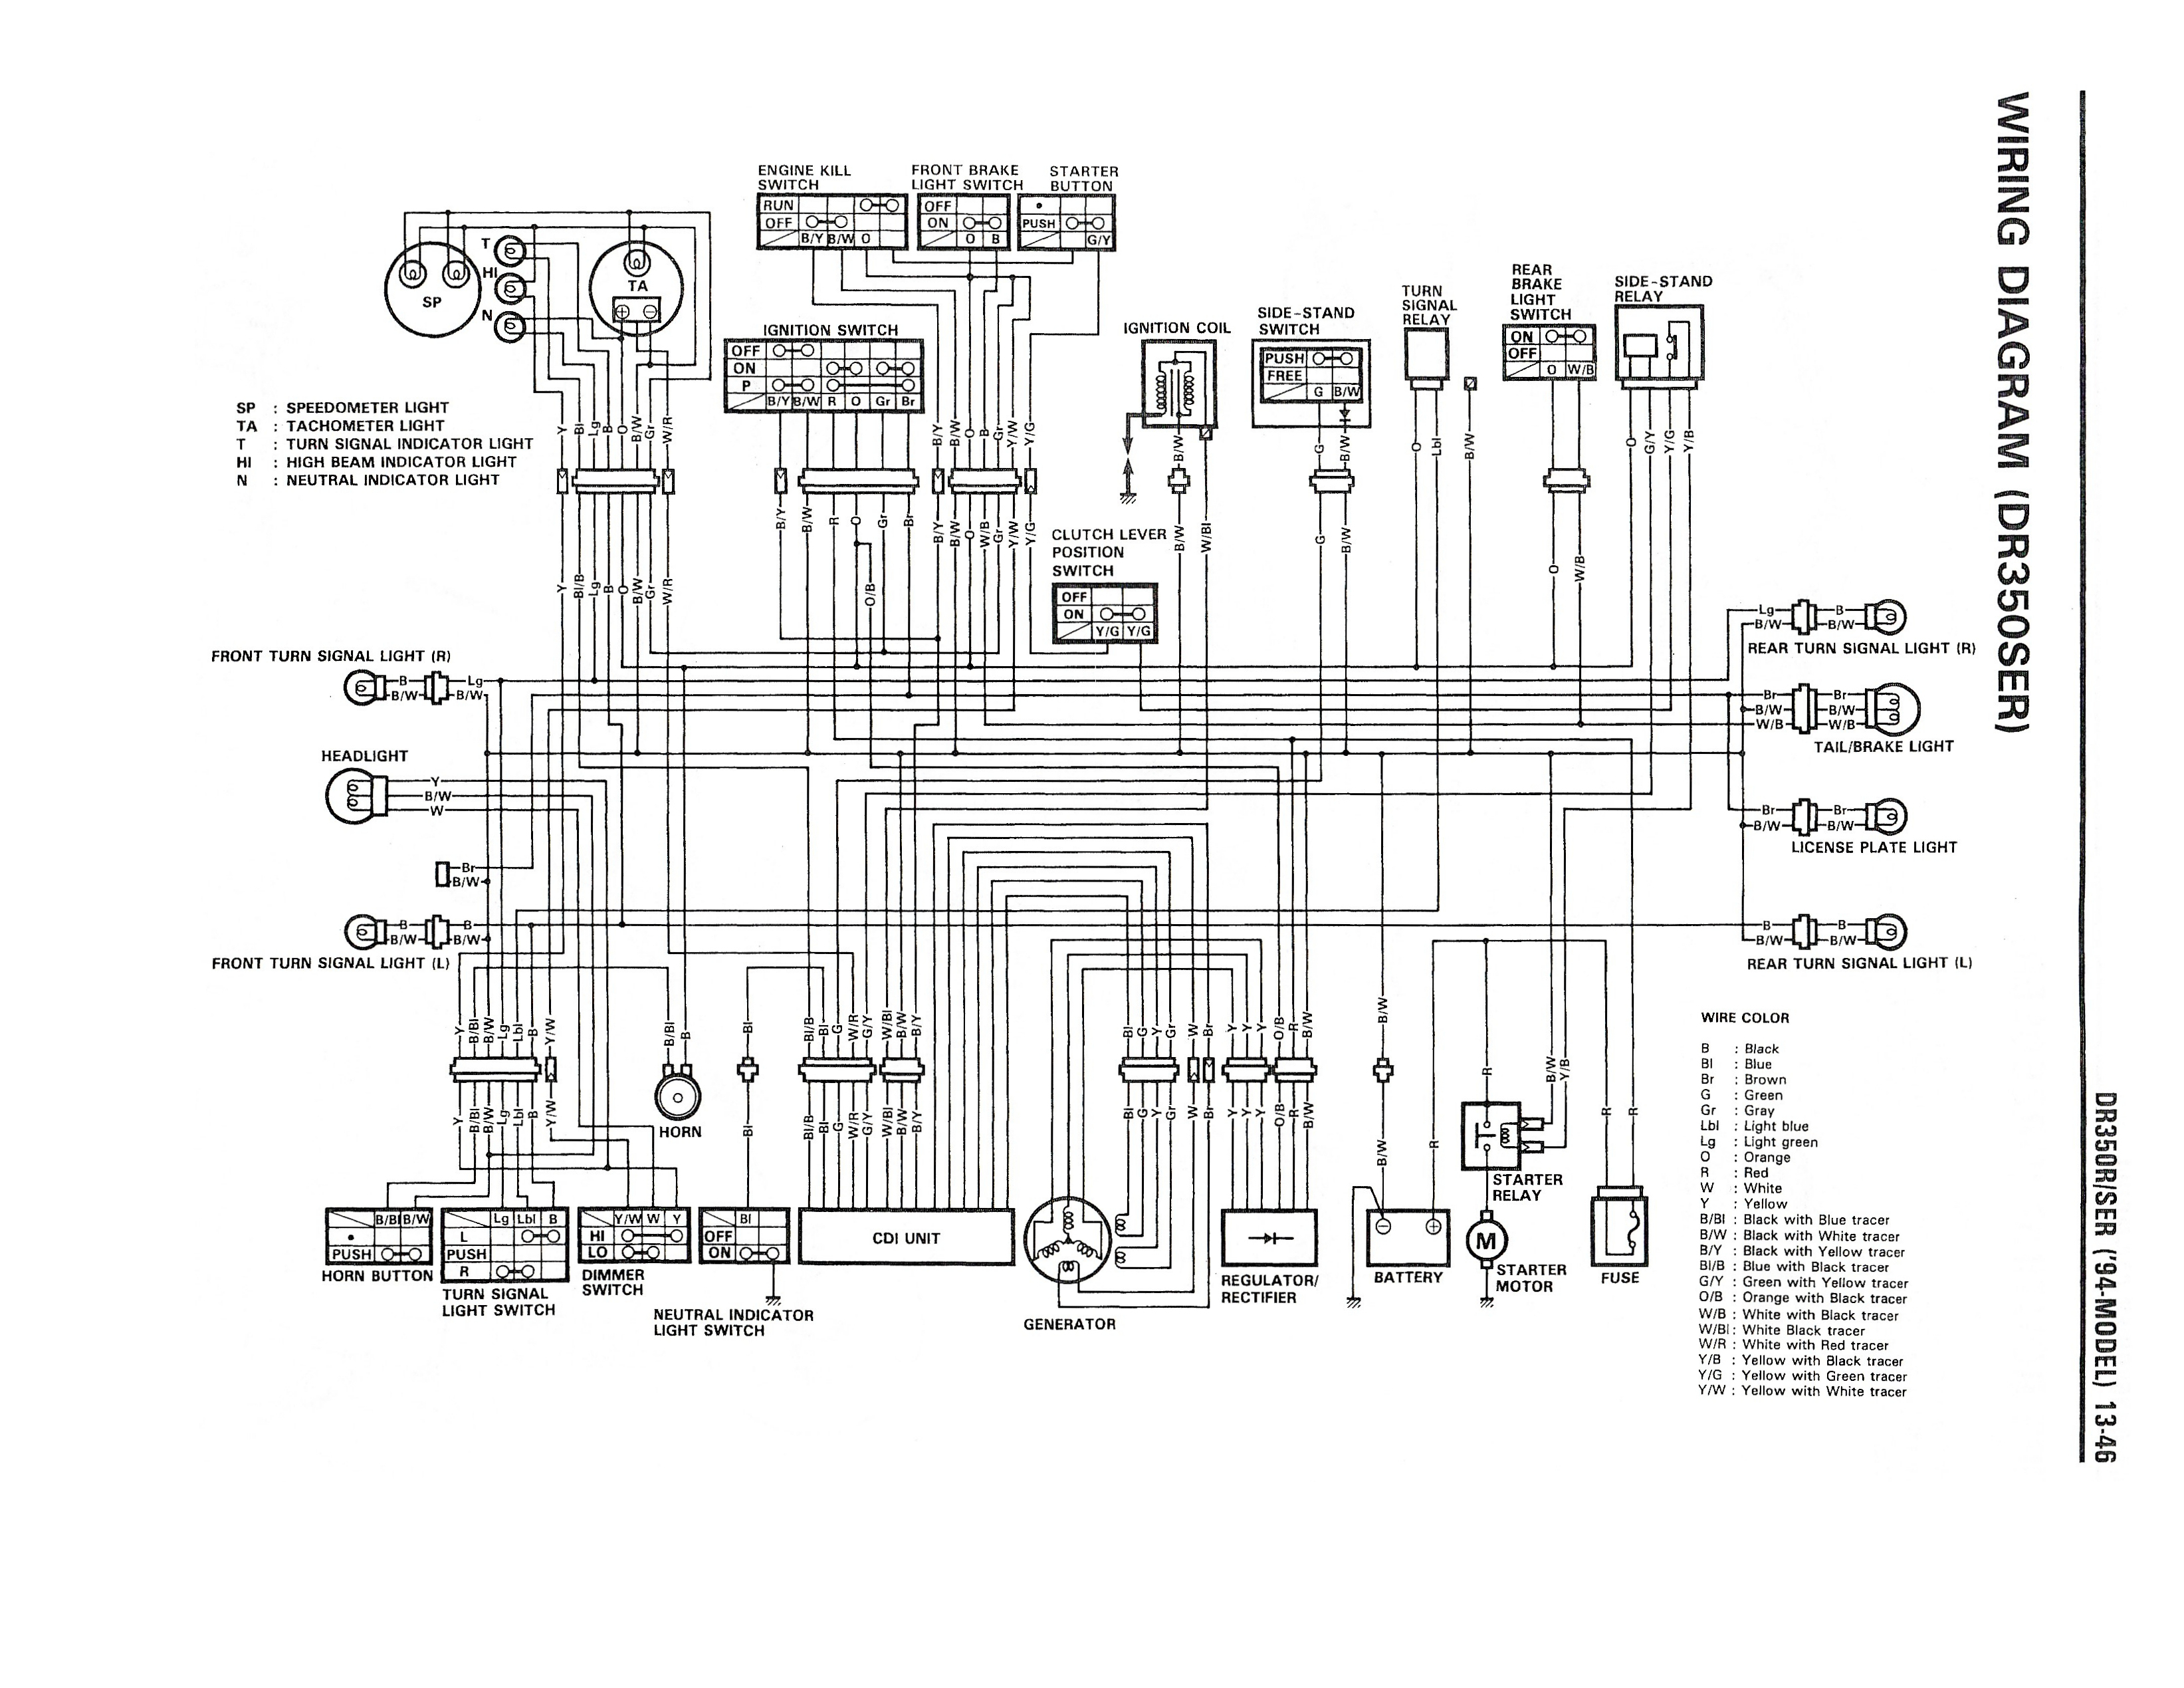 Wiring Diagram For The Dr350 Se (1994 And Later Models) - Suzuki - Wiring Diagram For A